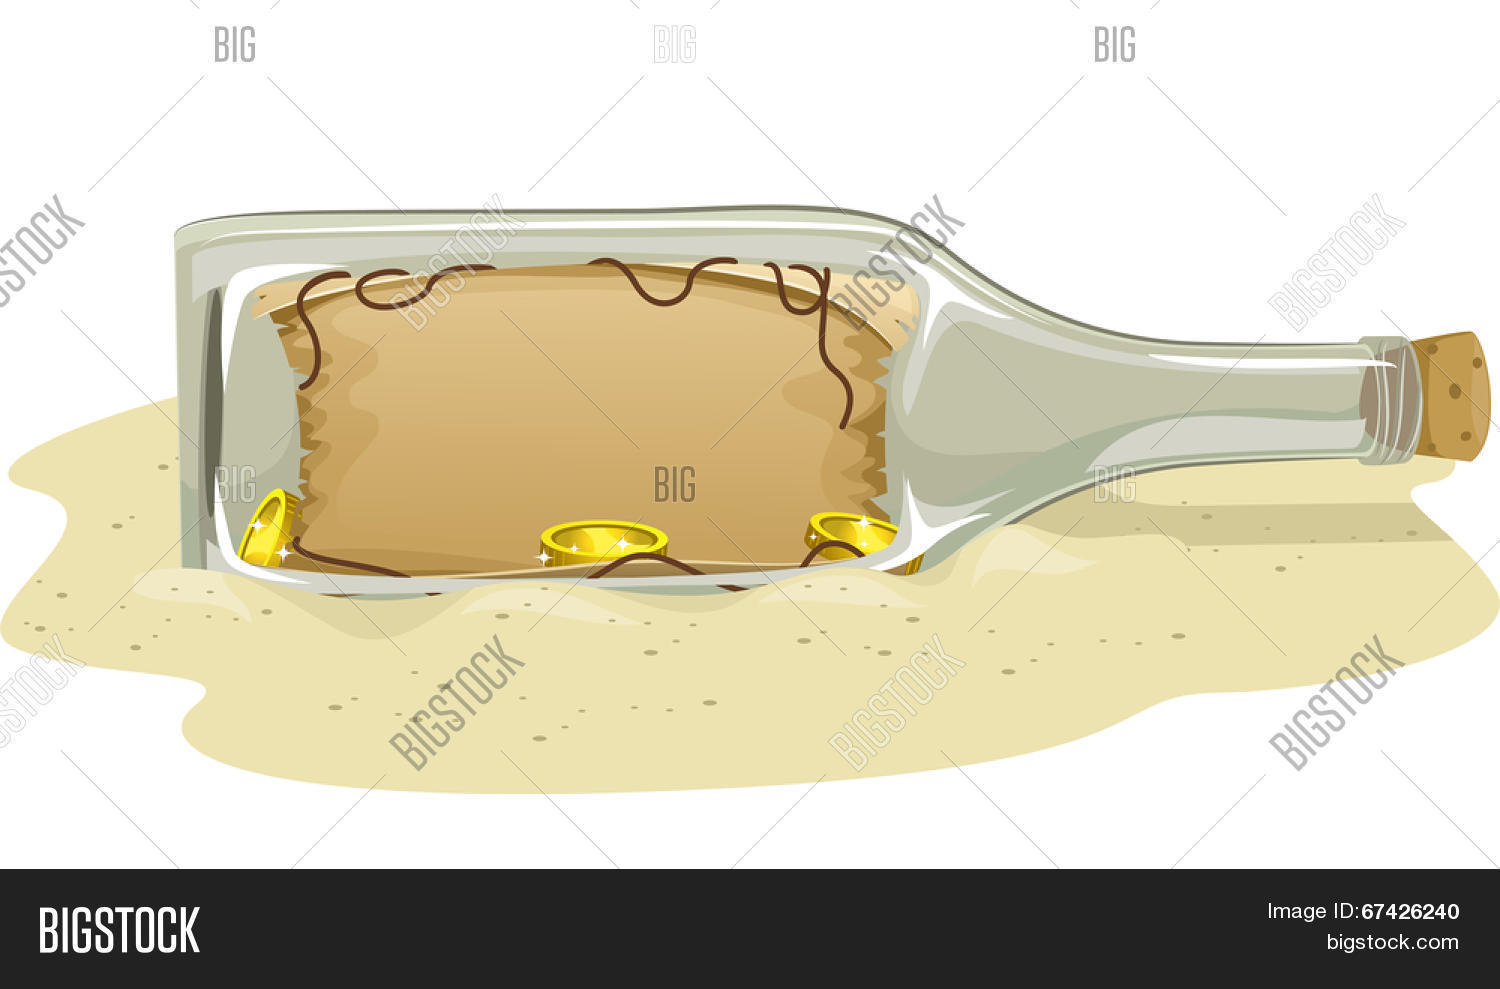 Illustration of a Treasure Map Tucked Inside a Bottle Stock Vector.